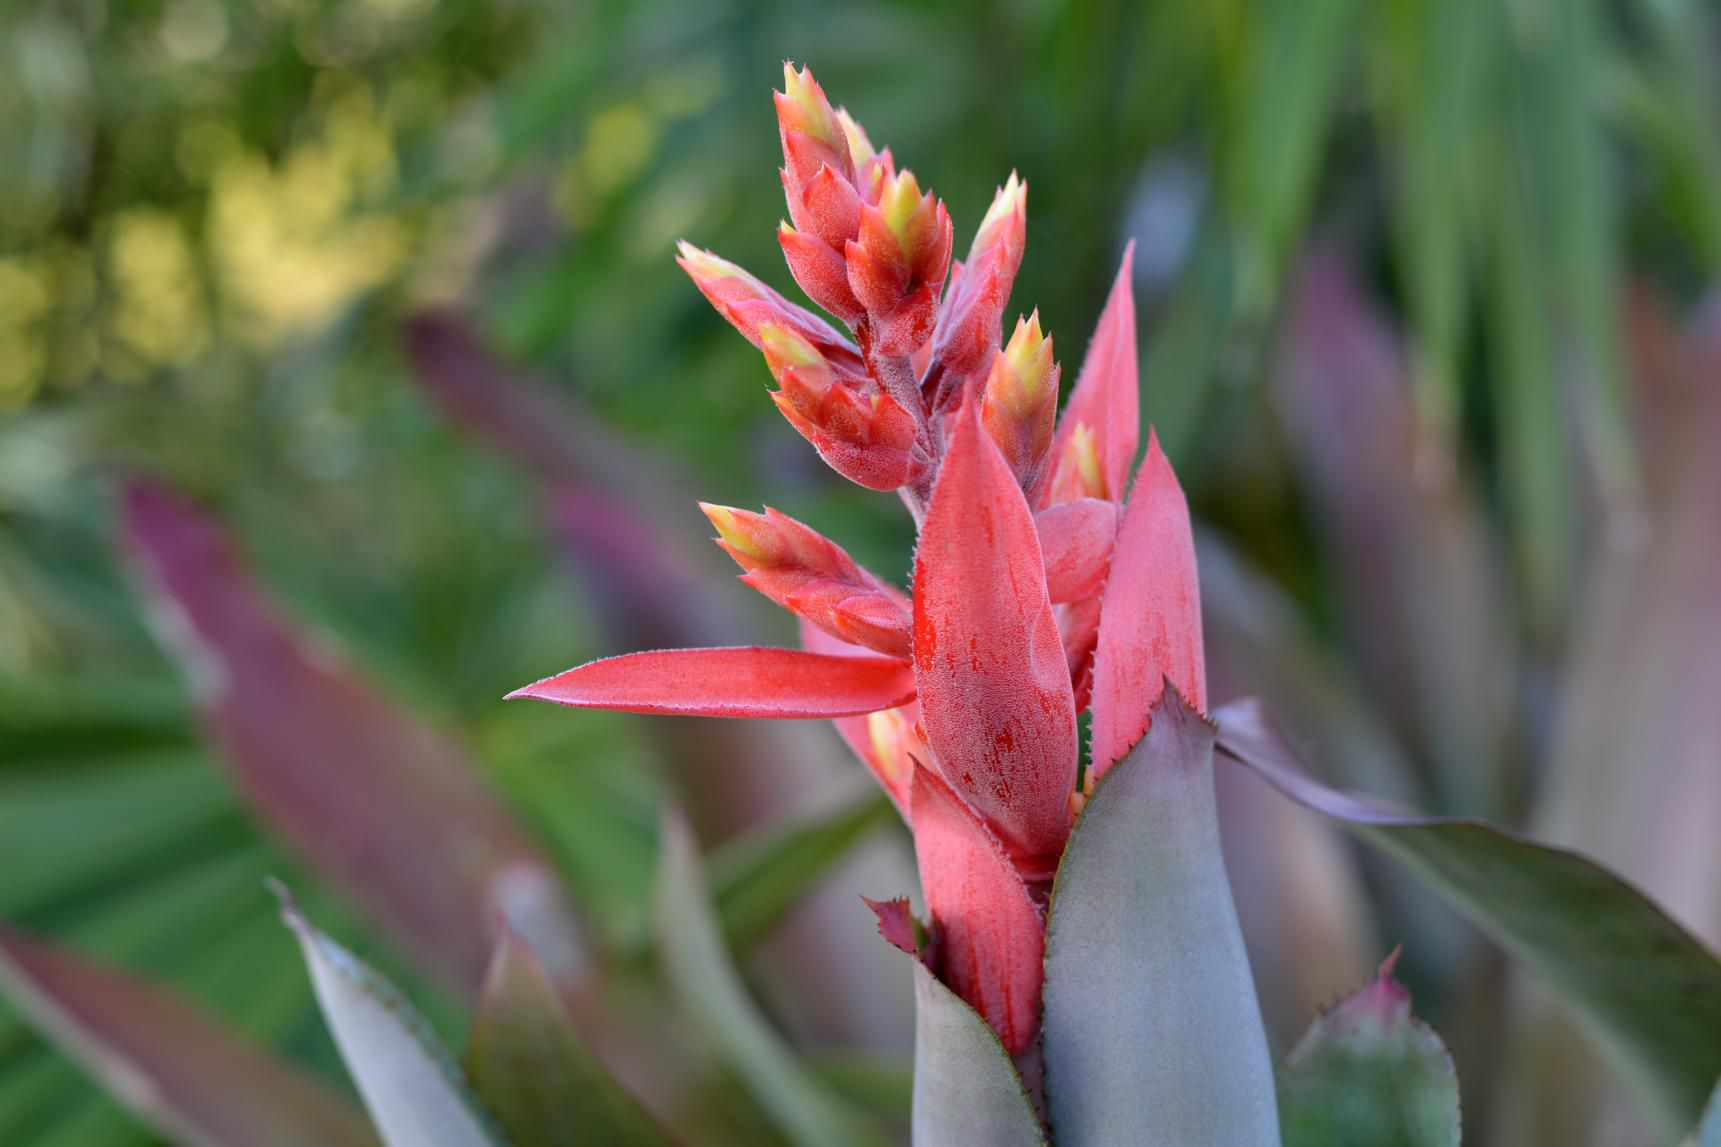 Aechmea bromeliad with a magenta flower